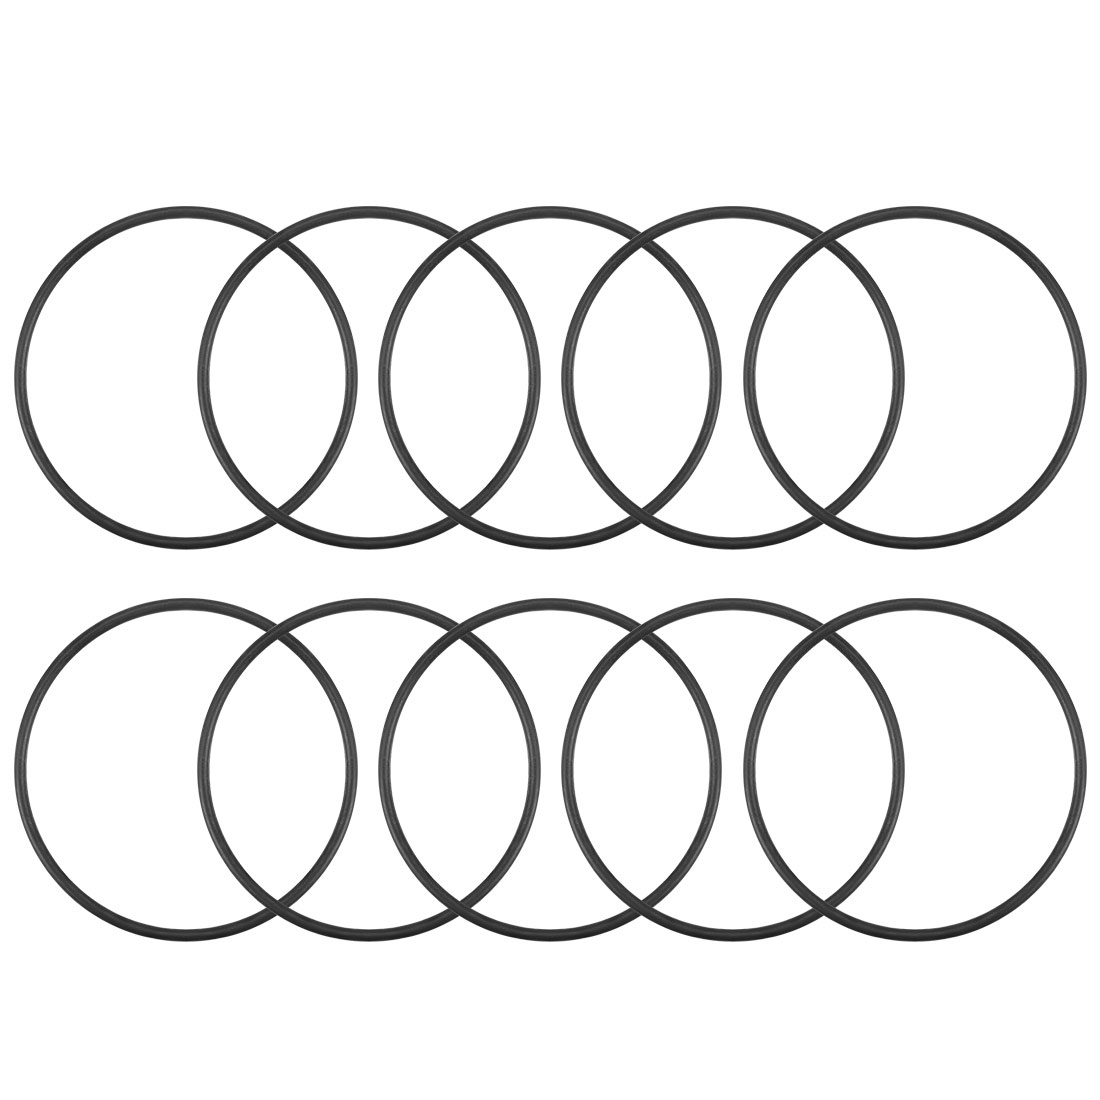 O-Rings Nitrile Rubber 45mm x 48.6mm x 1.8mm Round Seal Gasket 10Pcs